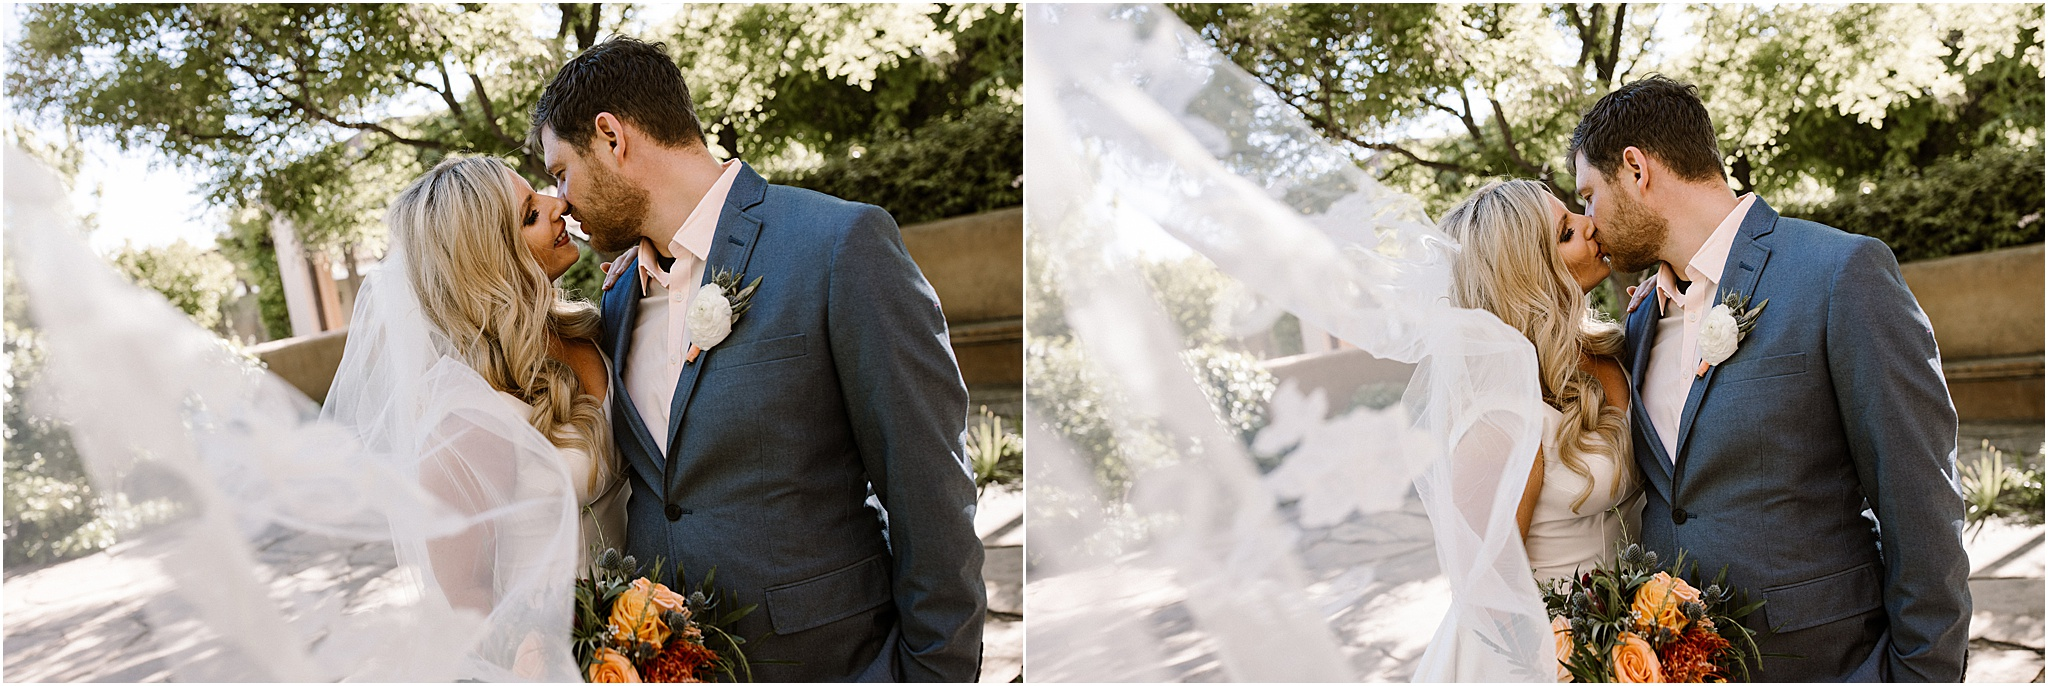 Albuquerque Wedding photographer at Hotel Albuquerque